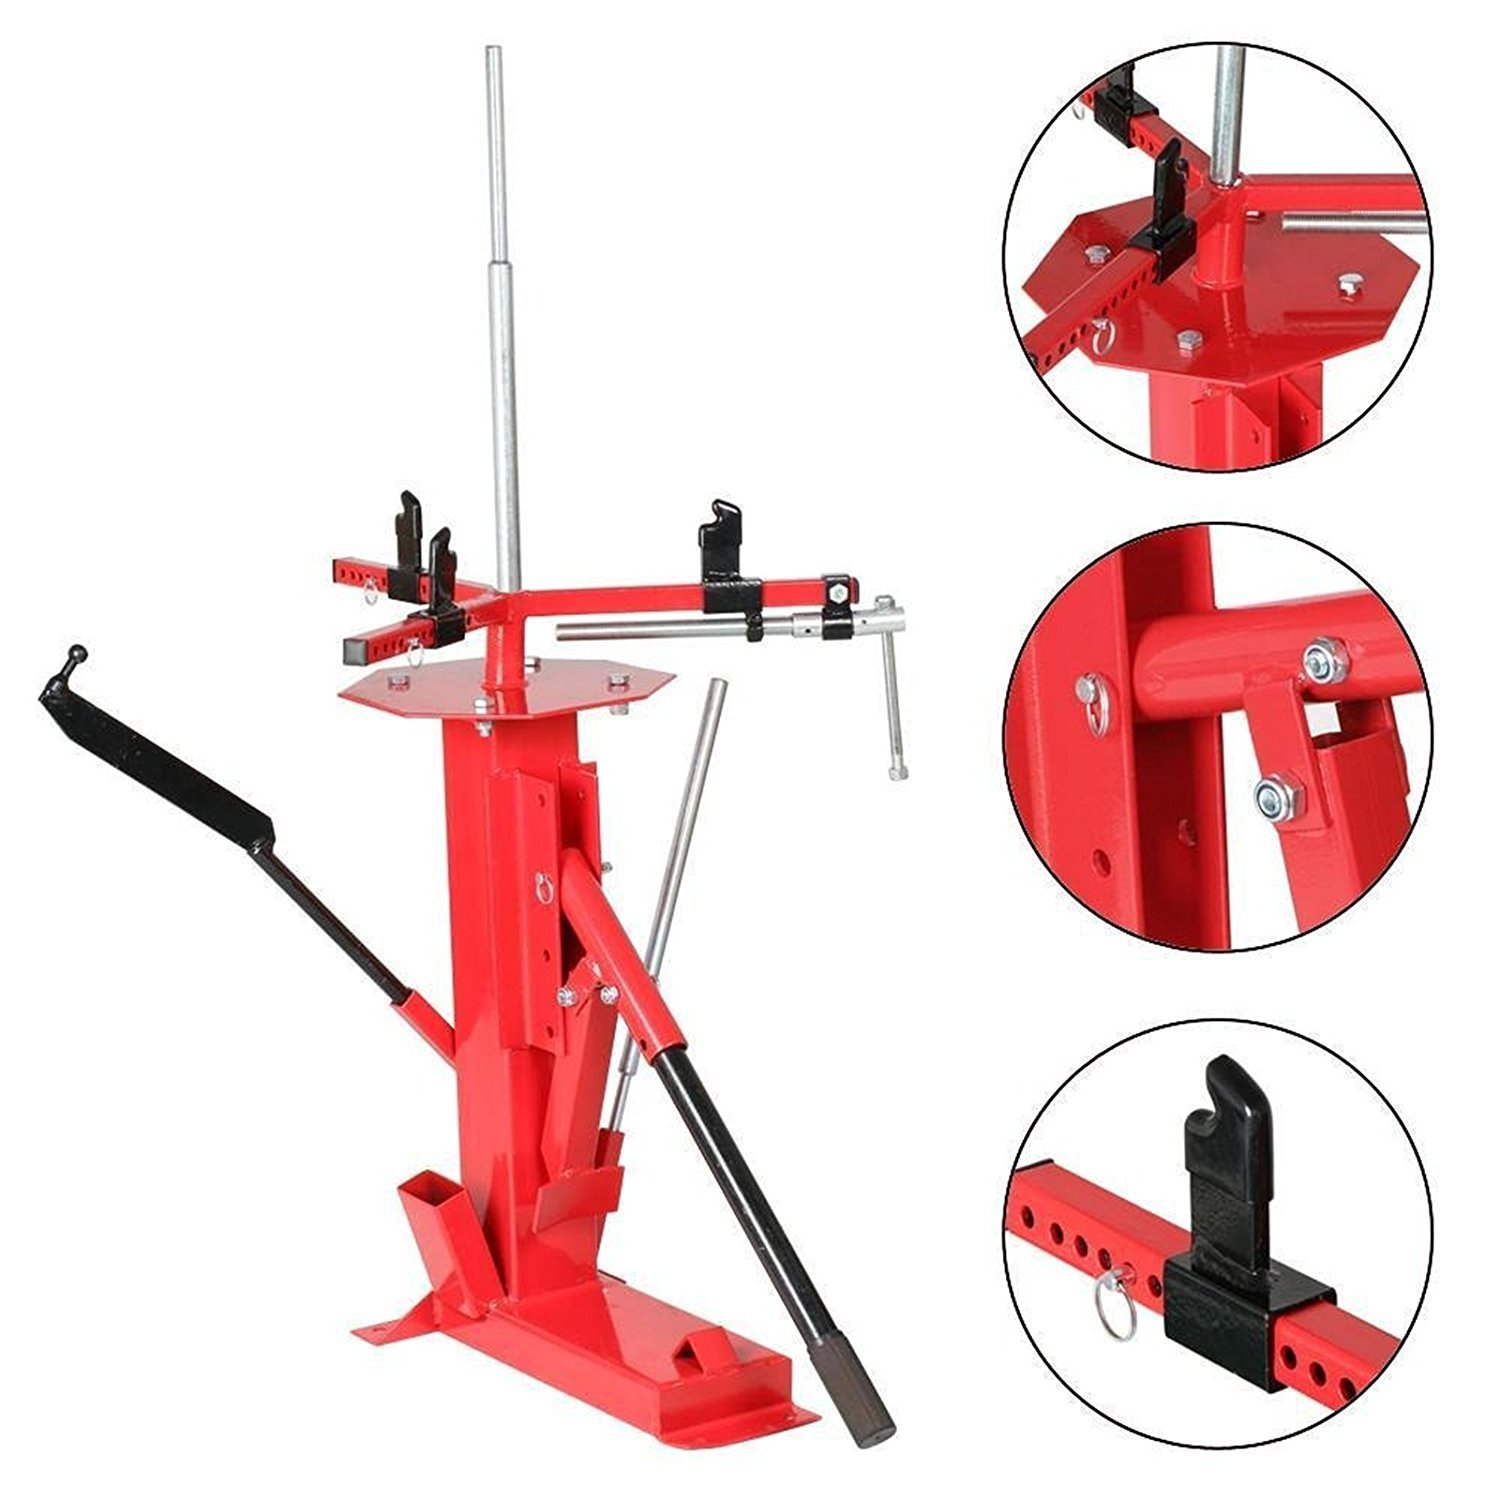 Smartxchoices Steel Manual Tire Changer For Motorcycle GoCart Trailer Bike ATV Truck Tire Repair Tool 4'' to 16.5''